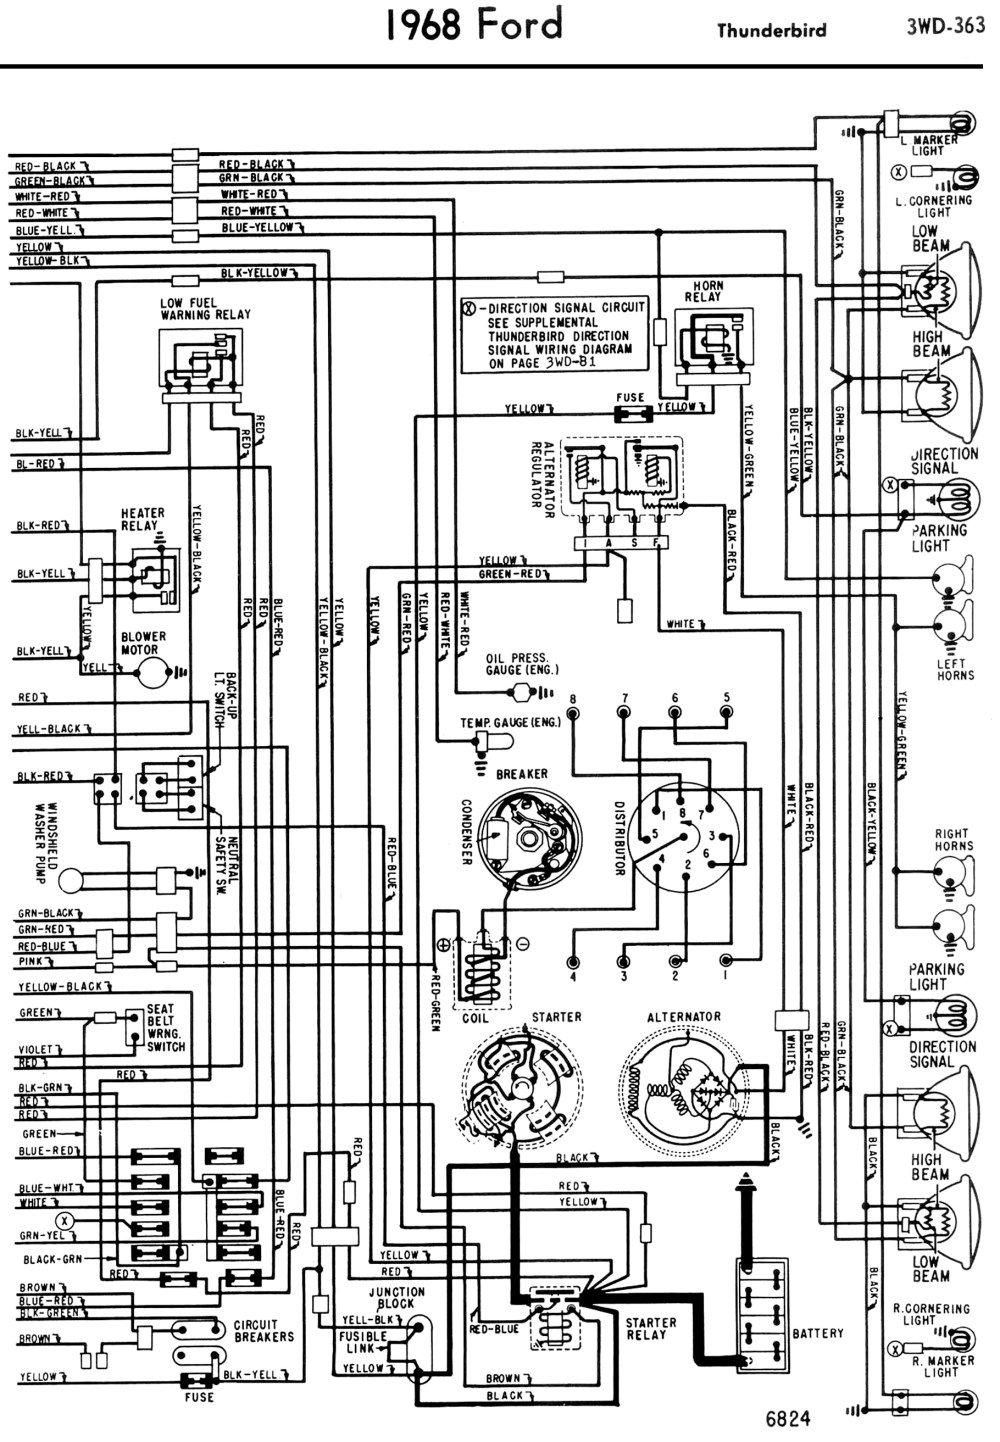 medium resolution of wiring diagram for 1986 ford thunderbird wiring diagram expert 1986 ford thunderbird wiring diagram wiring diagram